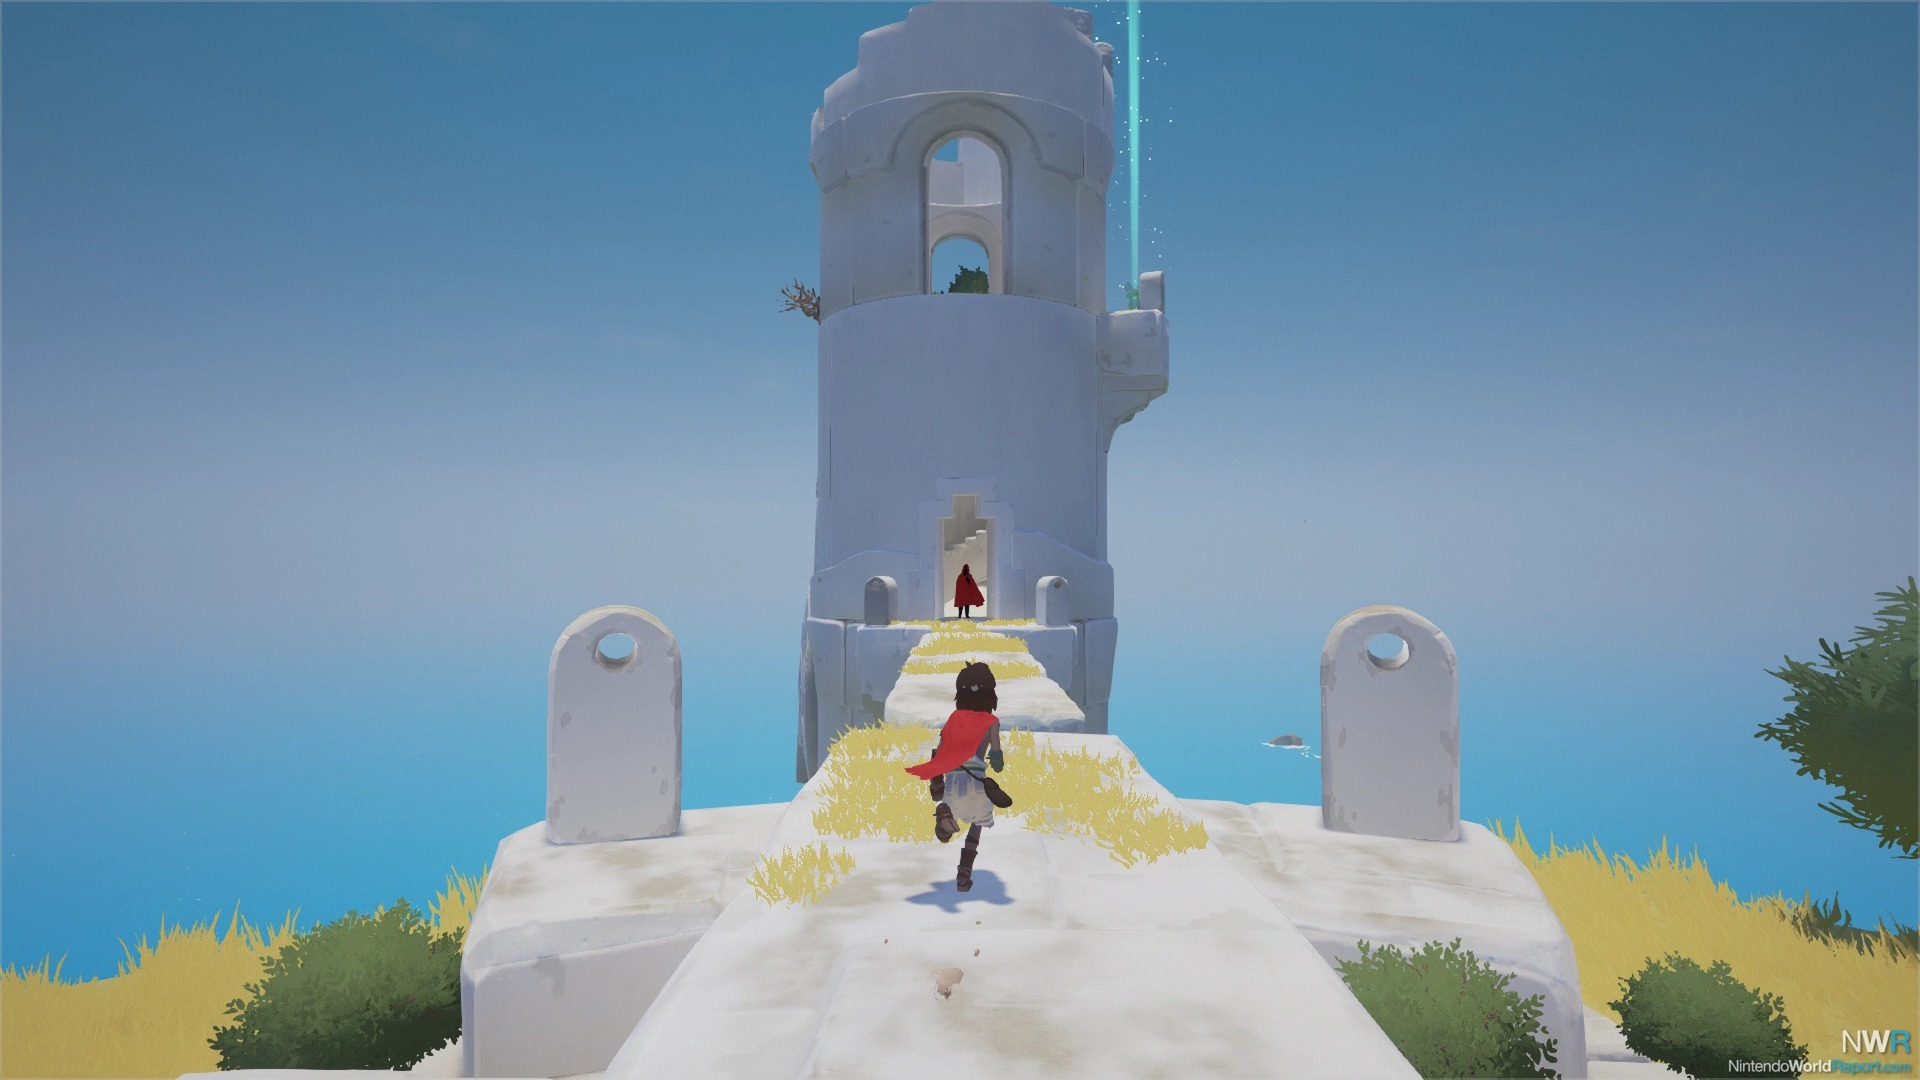 Adventure Game 'Rime' Releasing In May, More Expensive Switch Version Coming Later